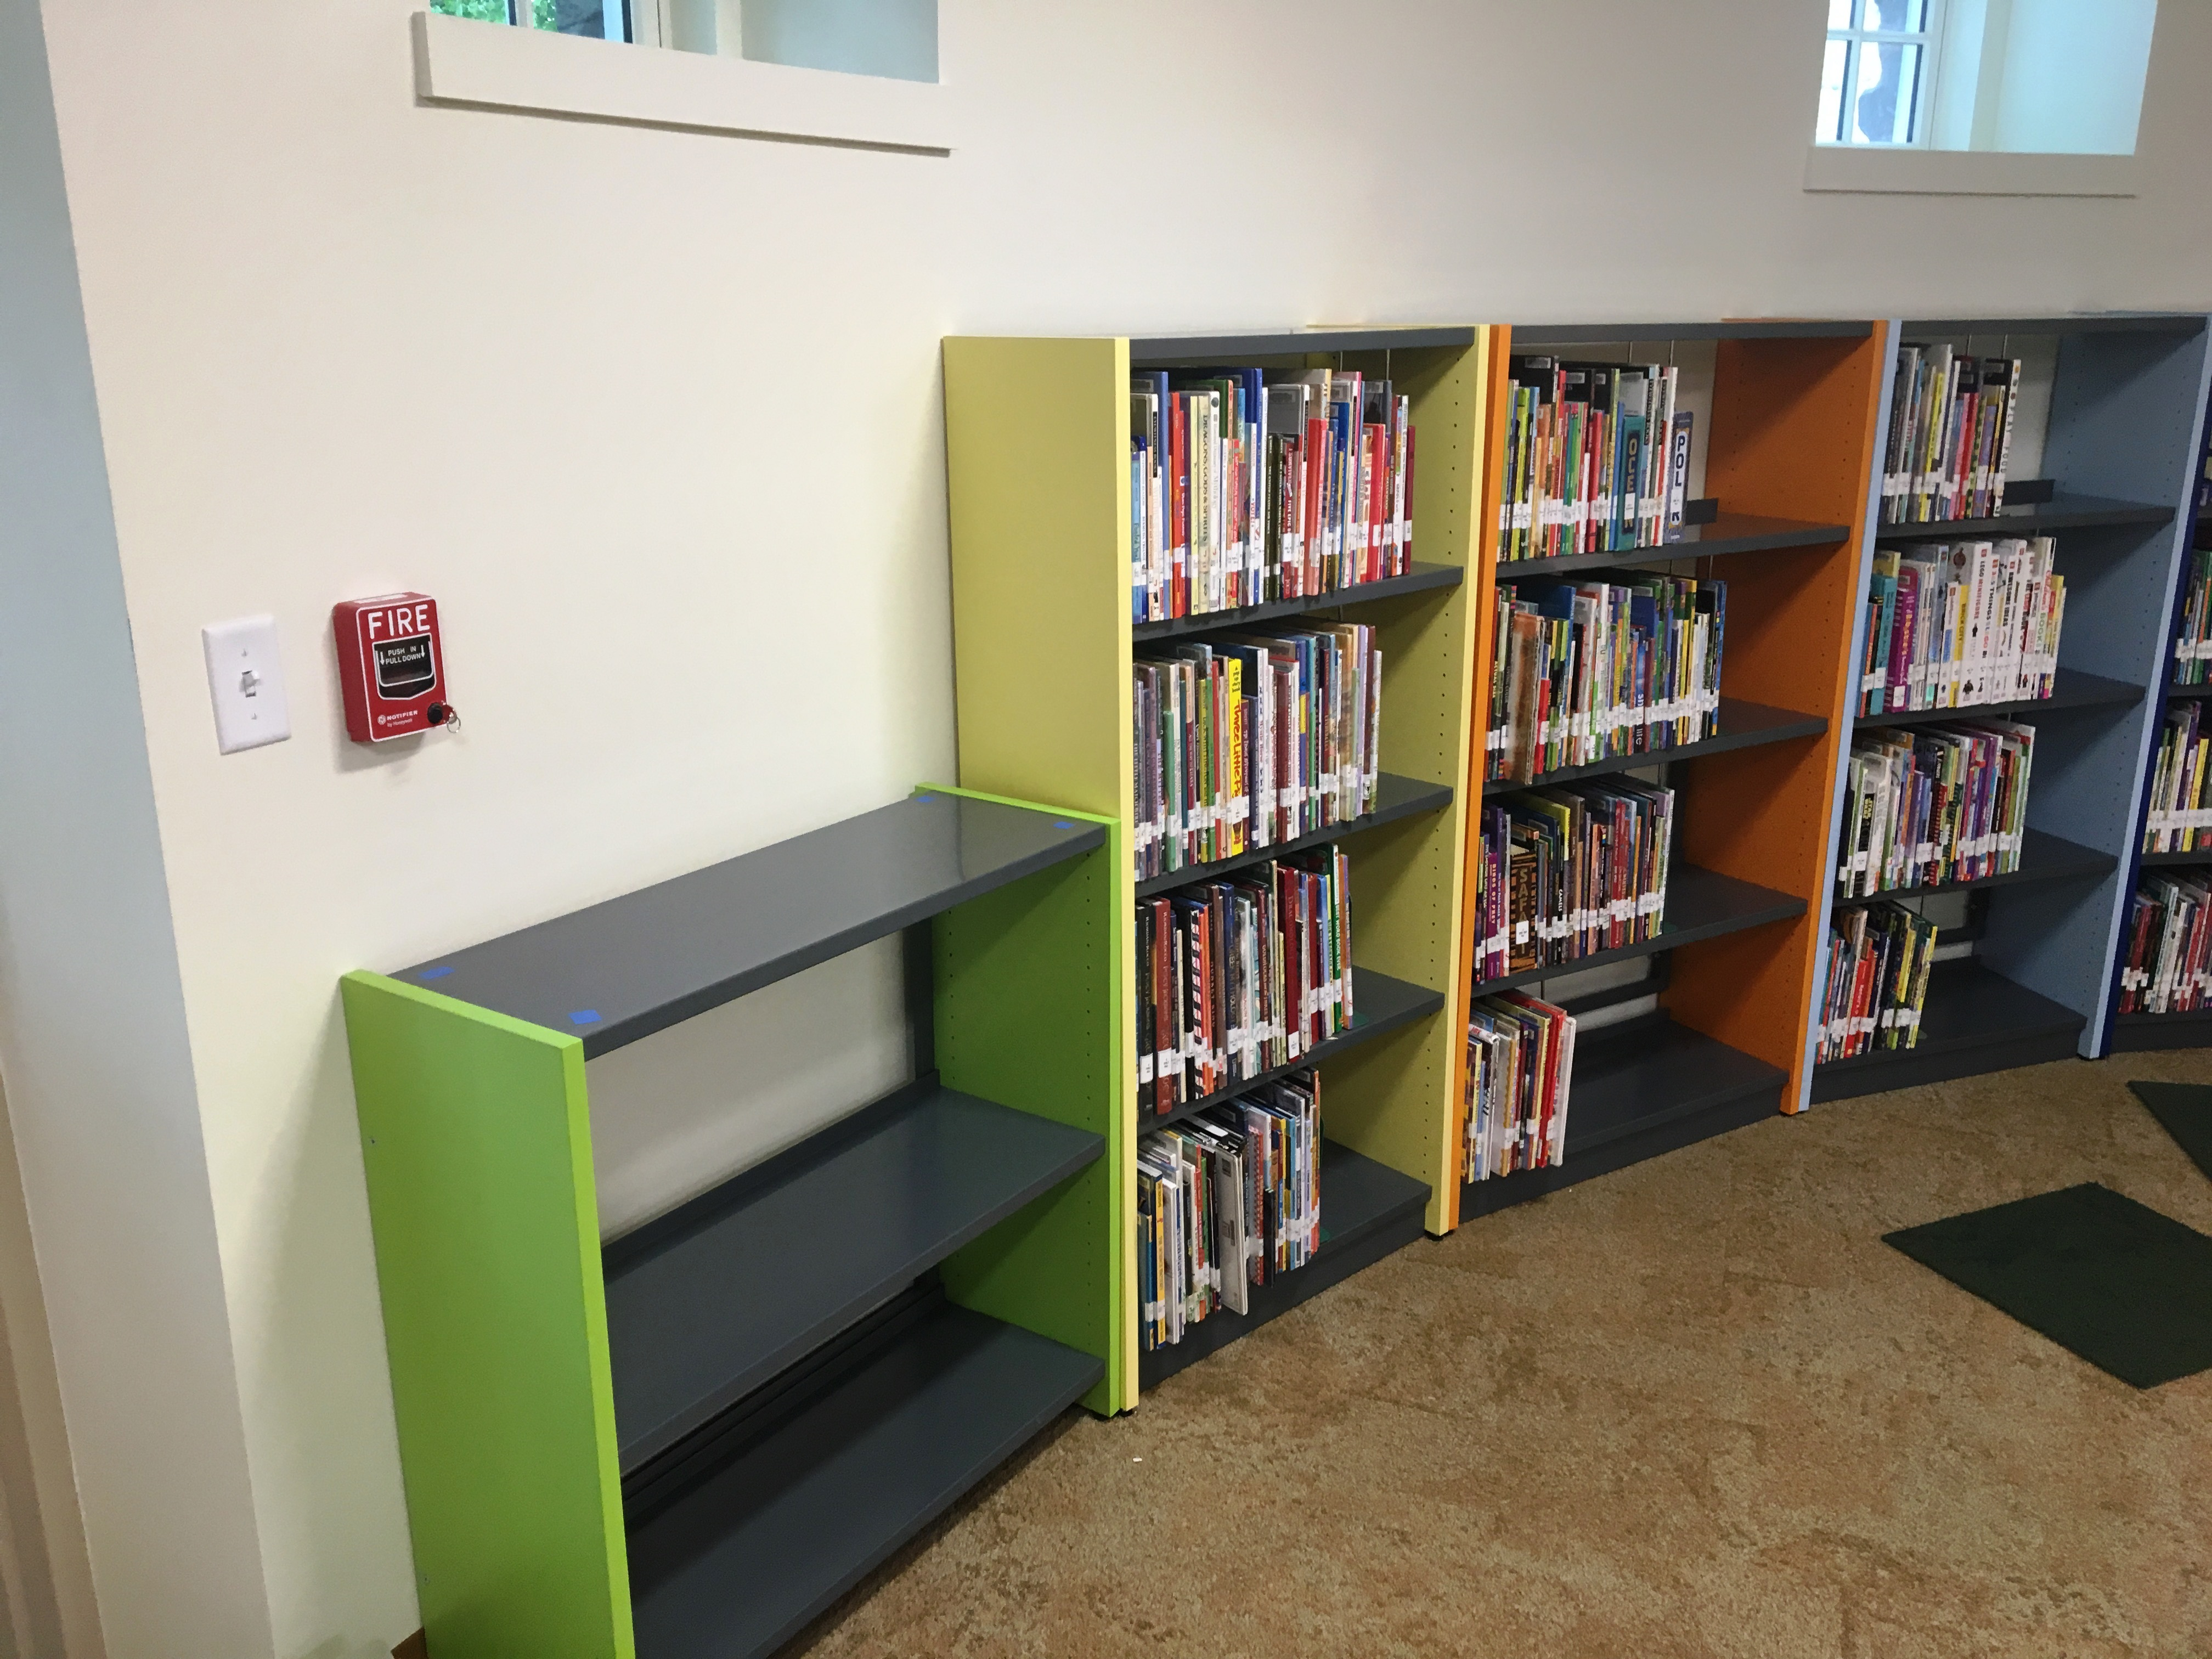 For More Information On BCI Modern Library Furniture, Please Contact Us  Today. We Have A Wide Variety Of Products That Will Enhance Your Library  Renovation ...